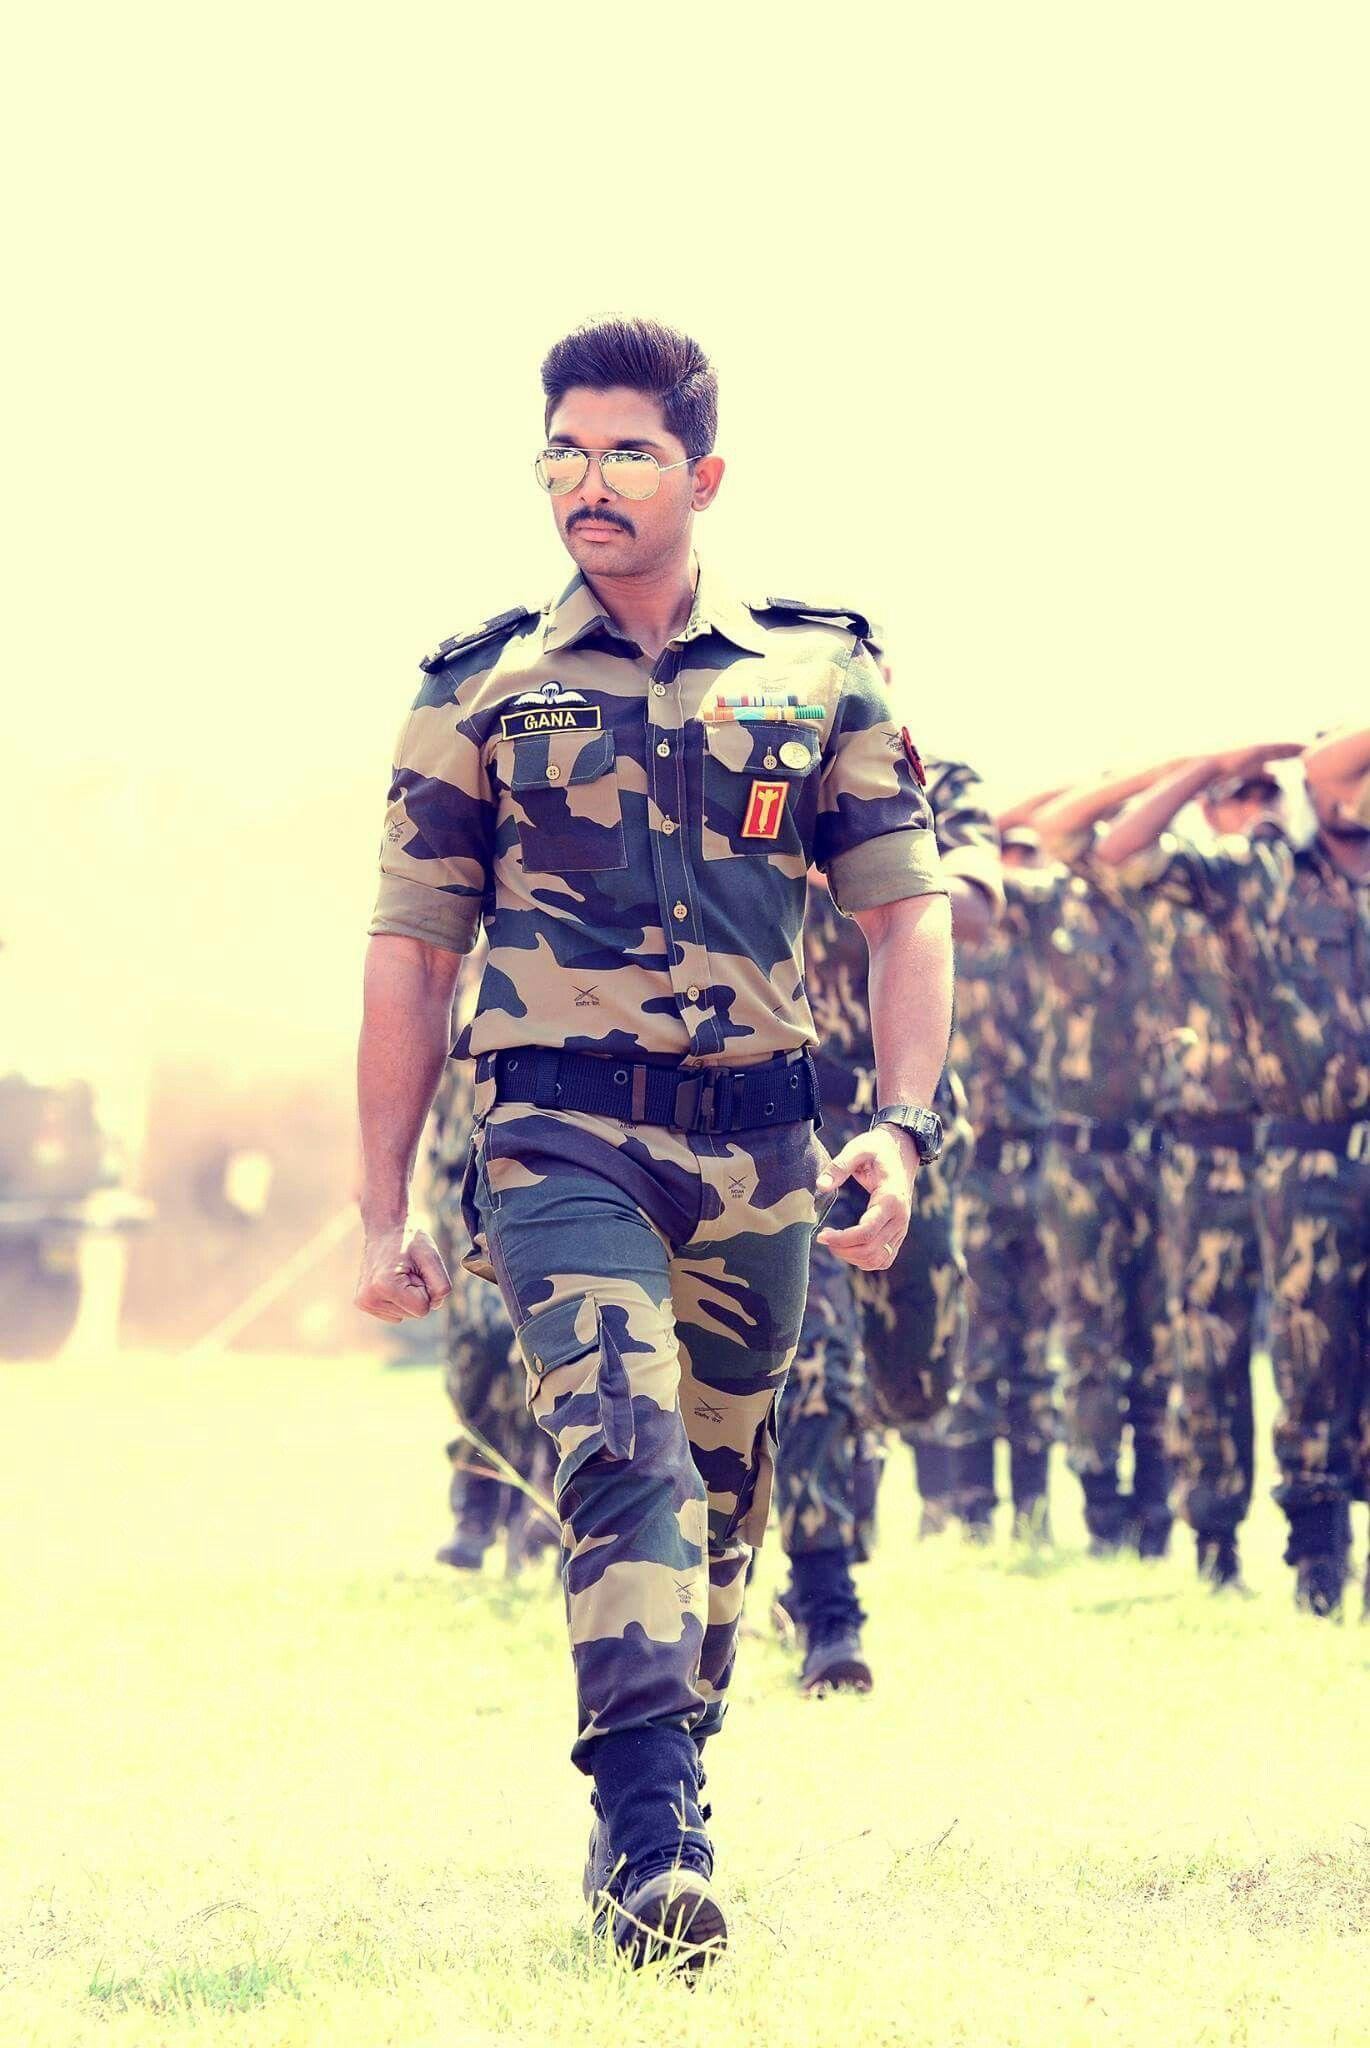 Indian Army Wallpapers - Wallpaper Cave